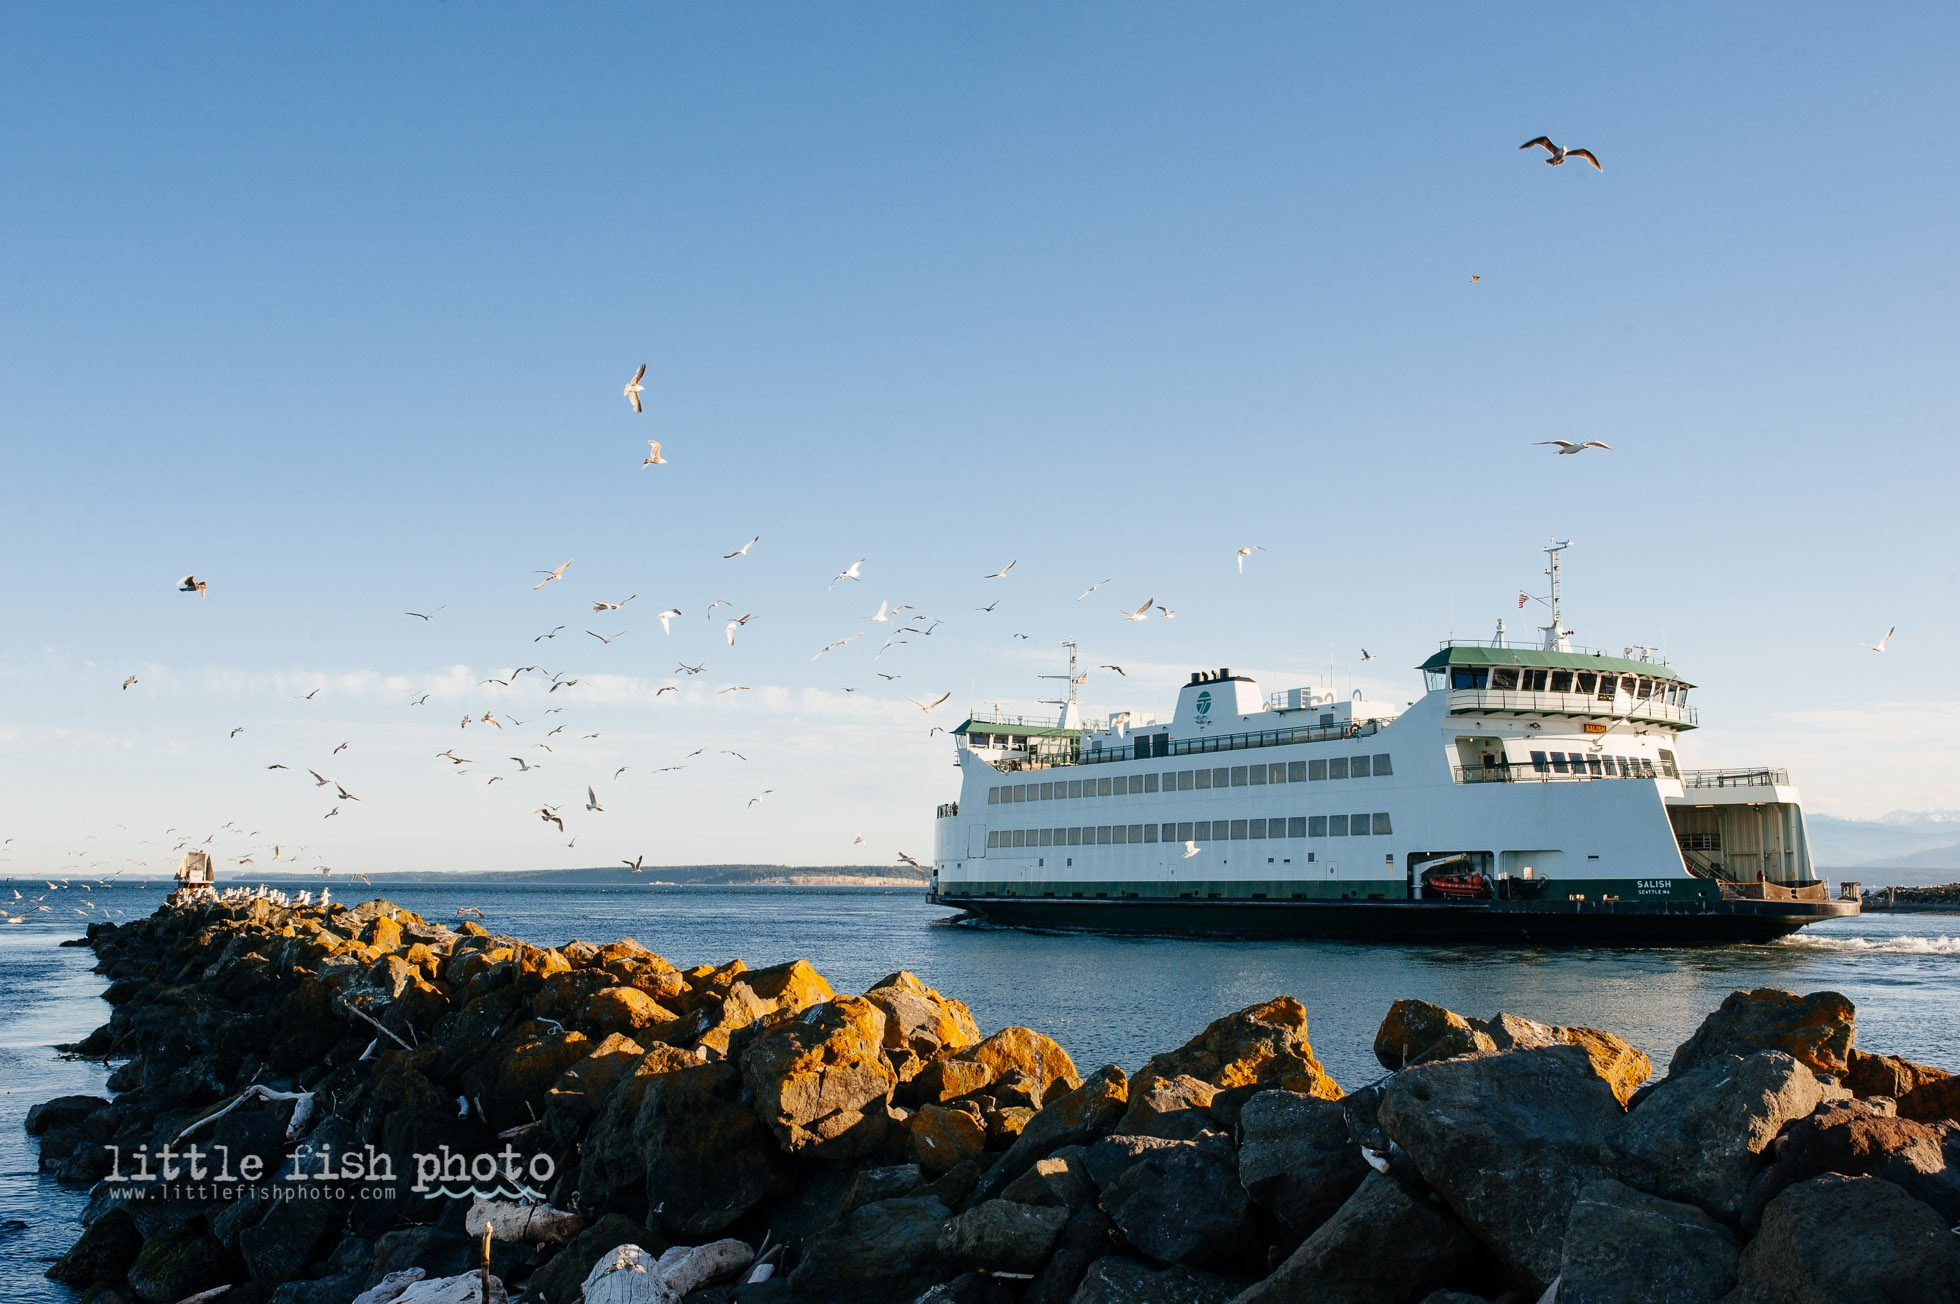 Seagulls Scatter as ferry leaves port